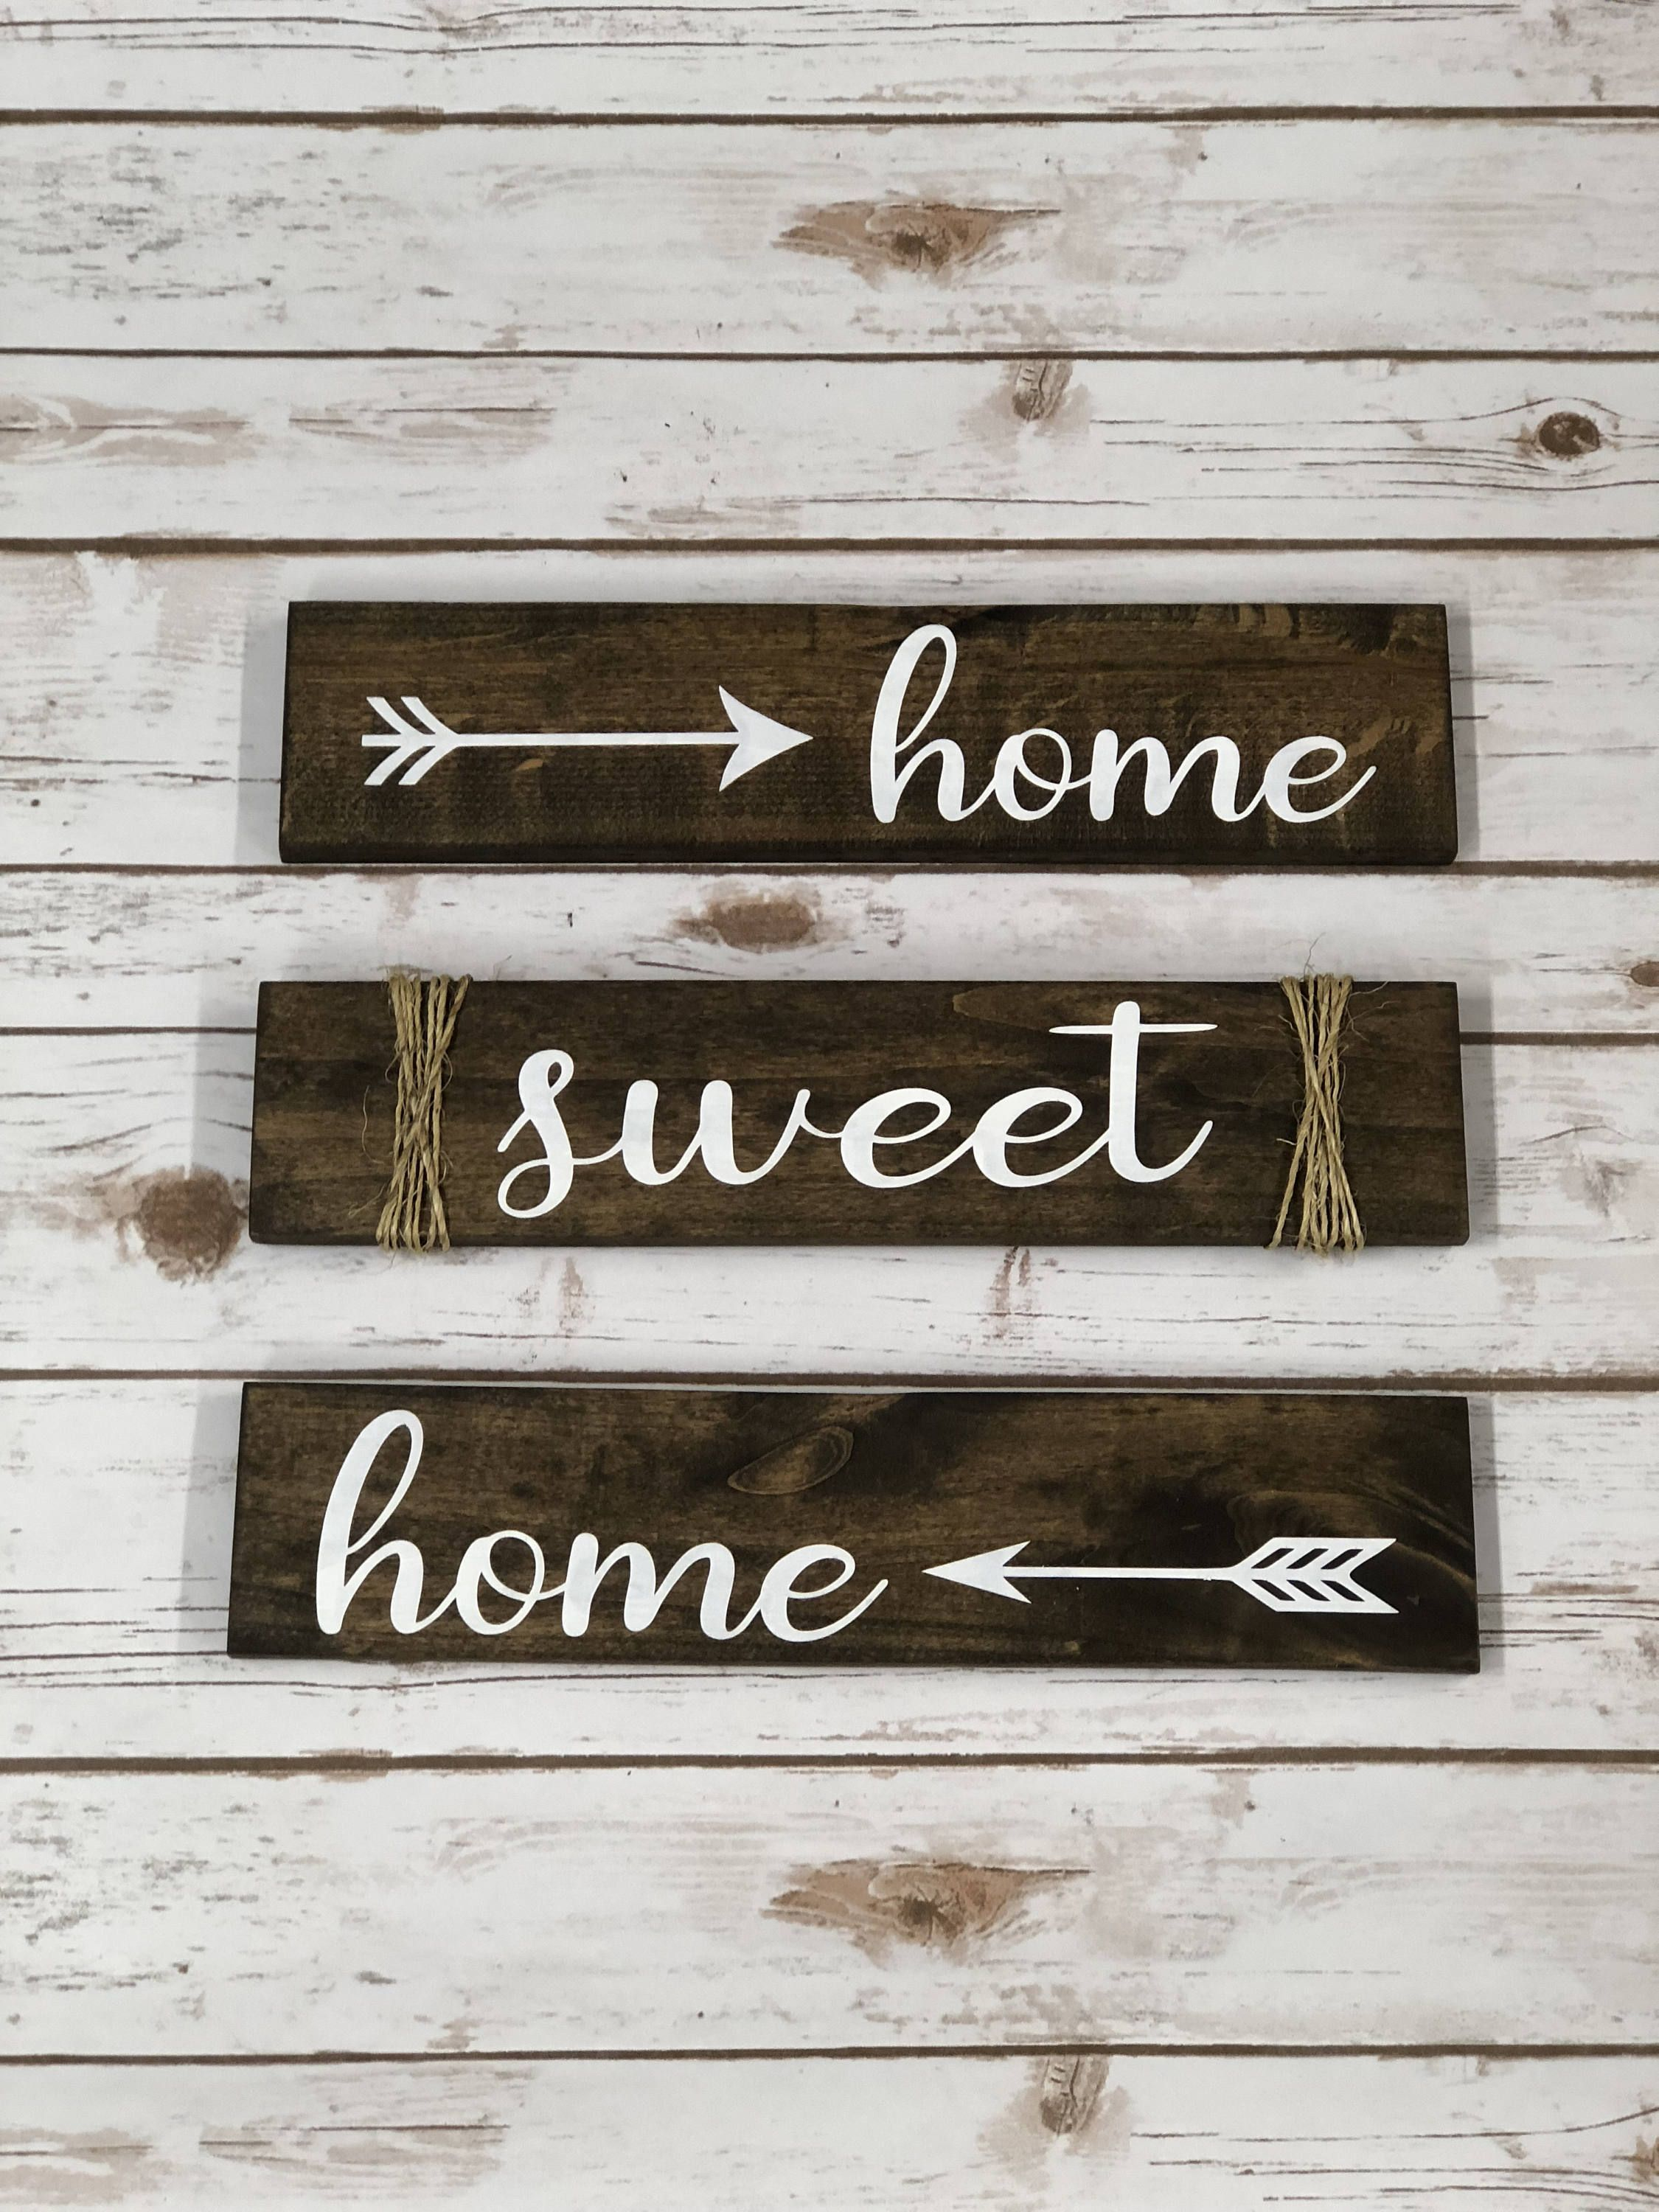 Home Sweet Home By Quinnshomemadecrafts On Etsy Home Wooden Signs Rustic Wood Signs Barn Wood Signs